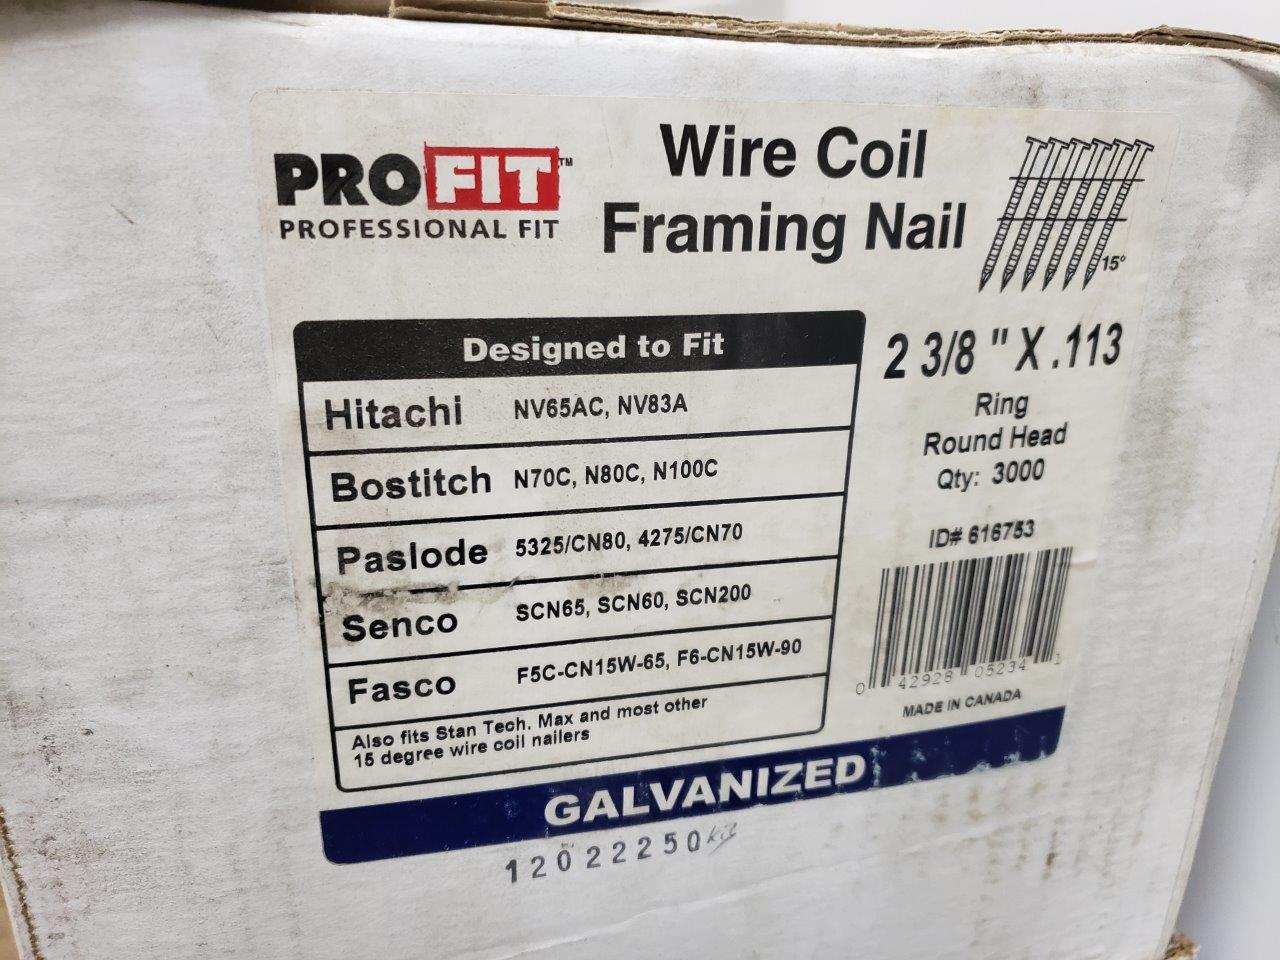 Wire Coil Framing Nails